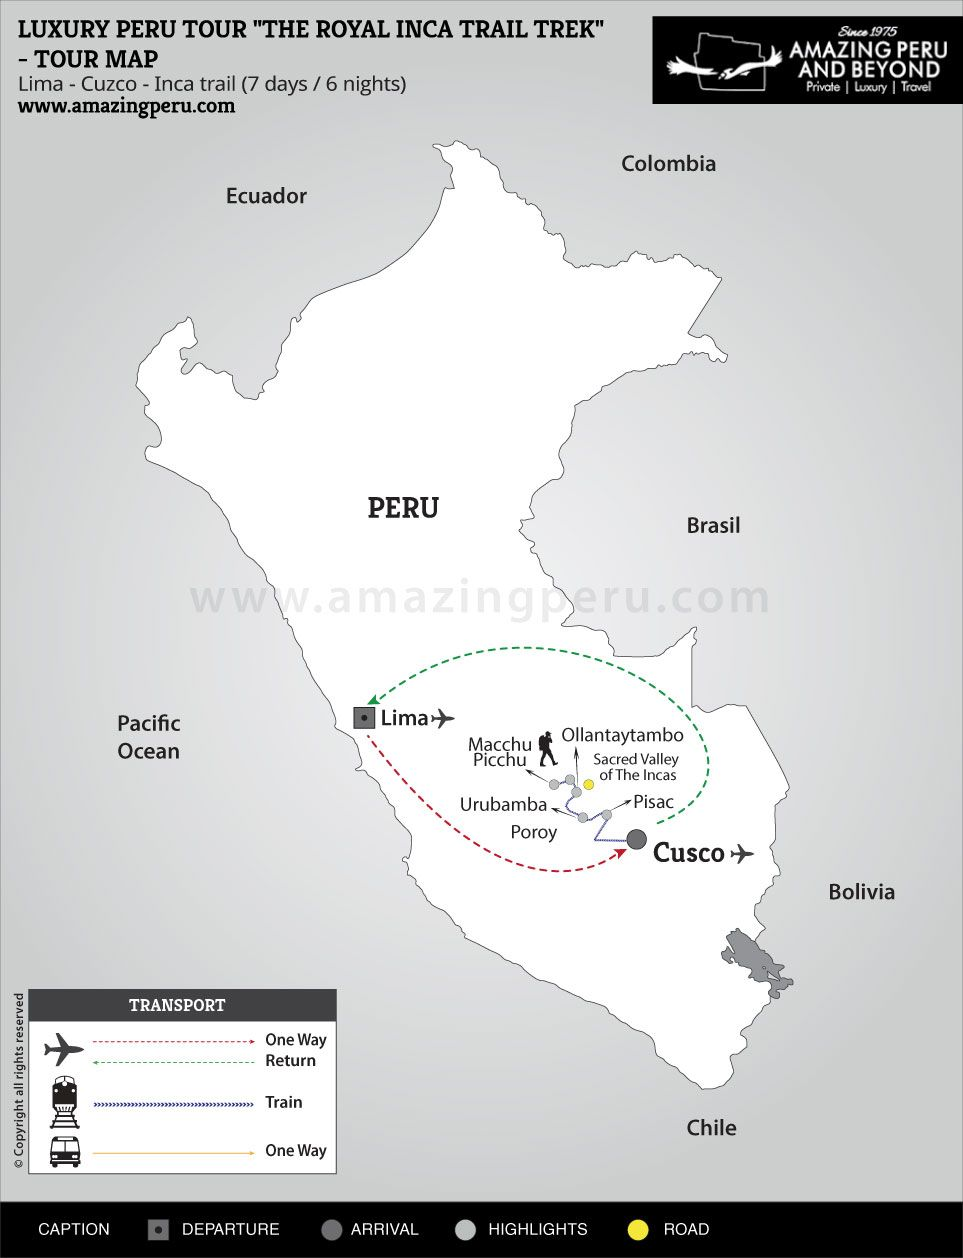 Luxury Peru Tour